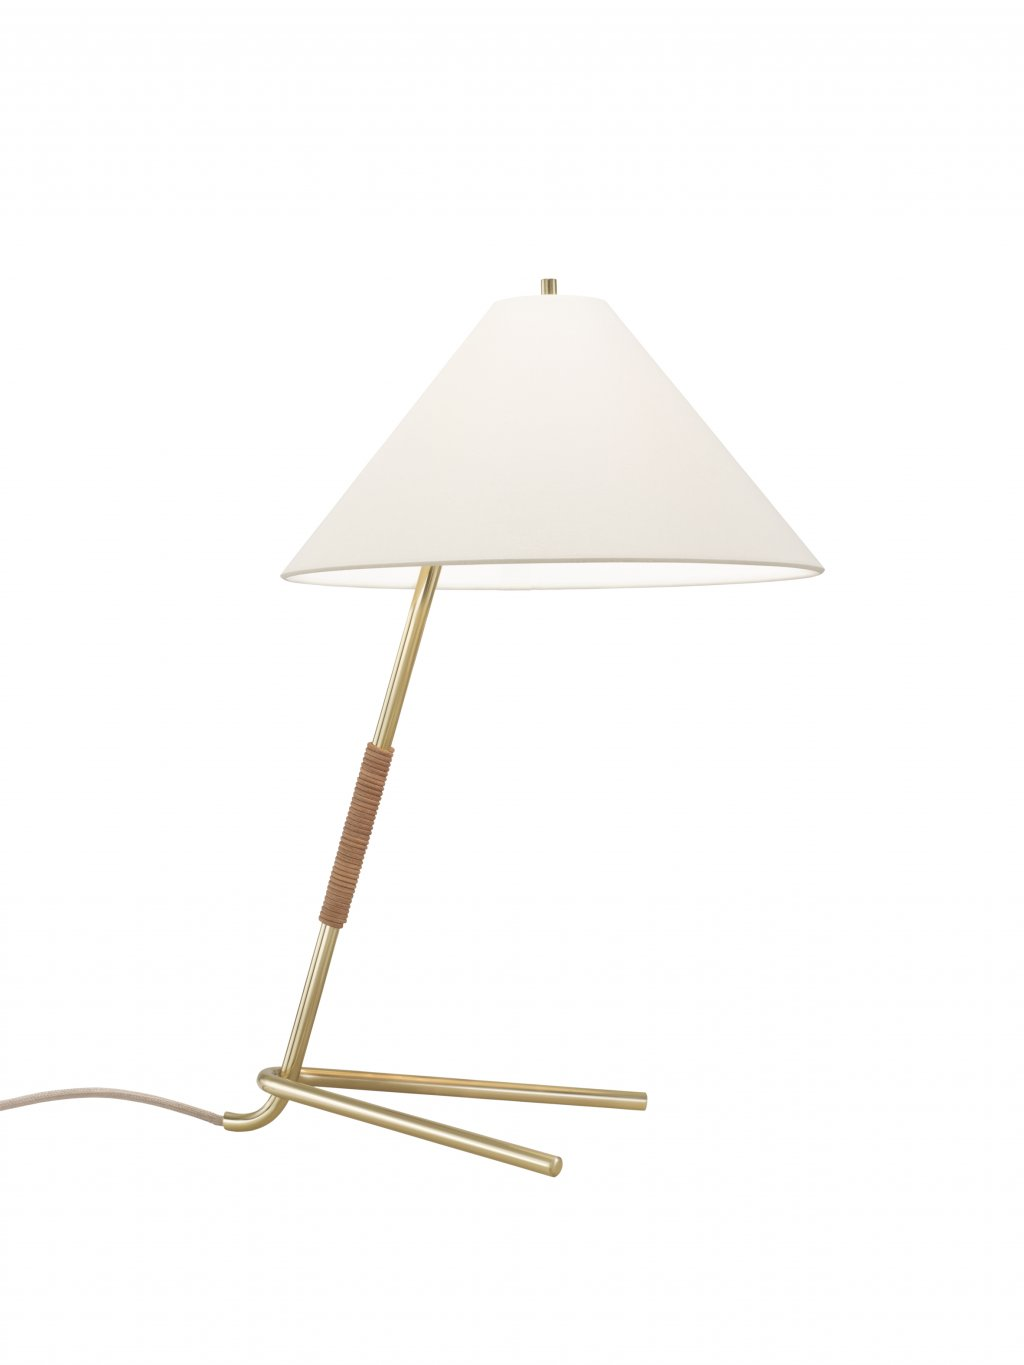 Hase, Table Lamp, 1954